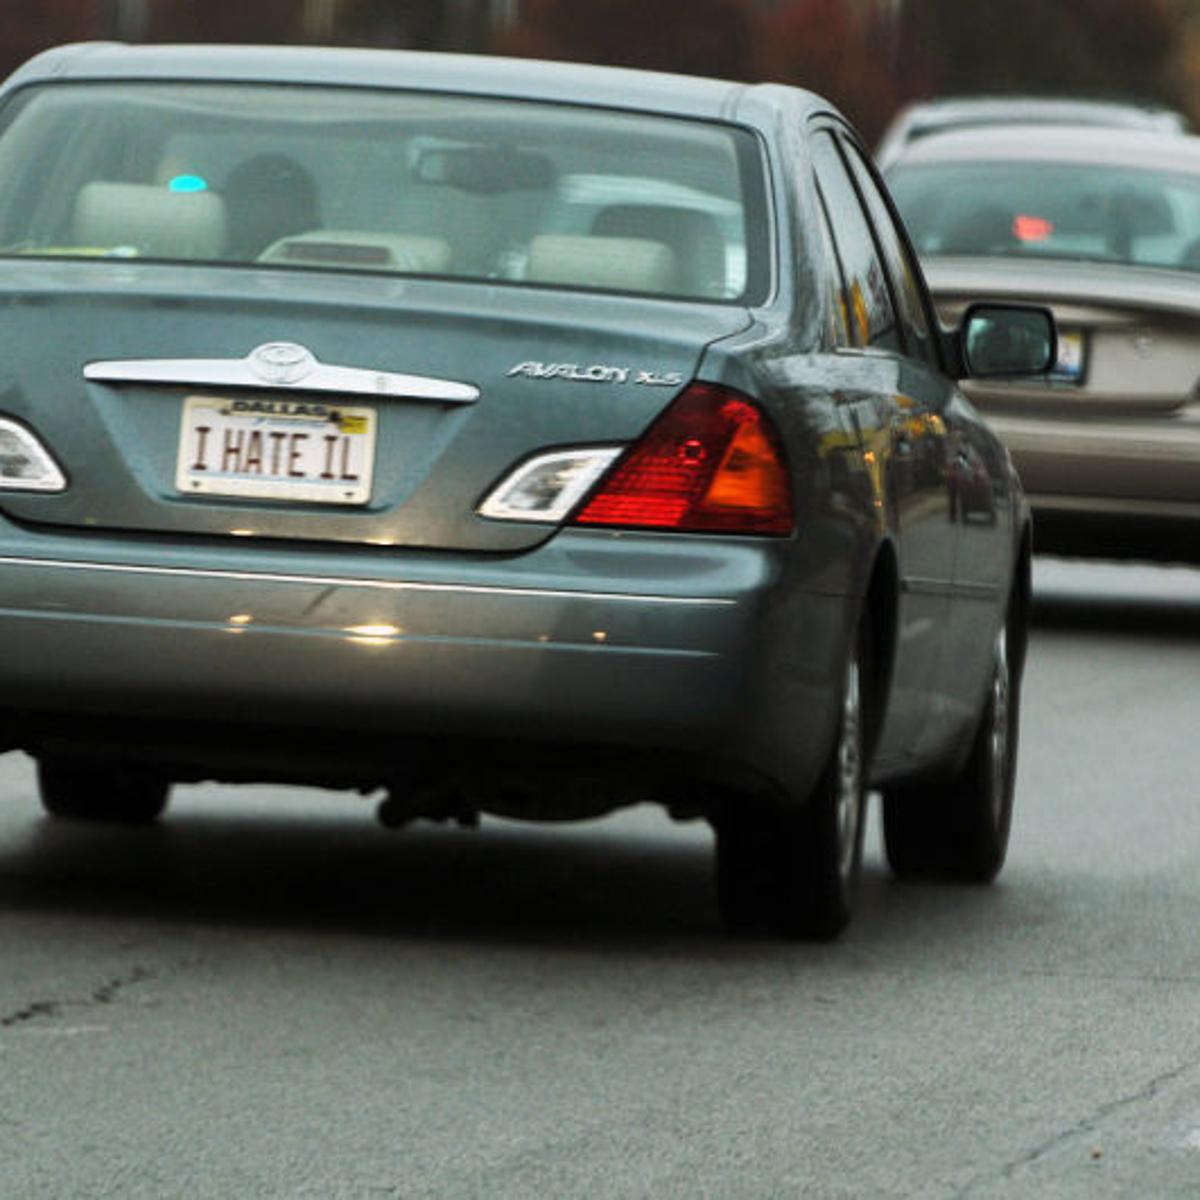 Illinois vehicles may soon require only 1 plate   Illinois